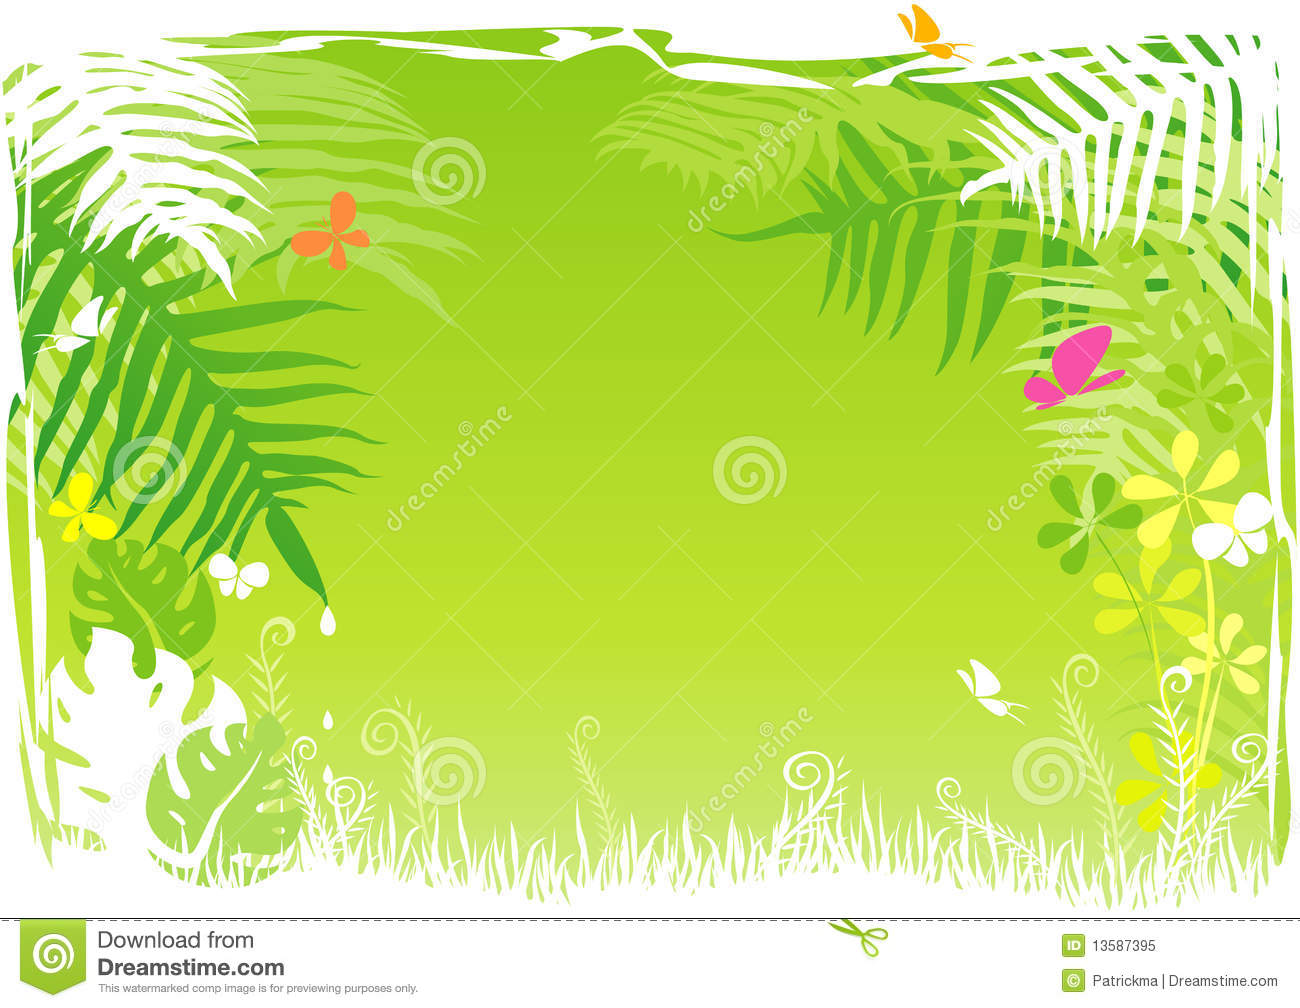 Jungle Background Clipart - Clipart Kid